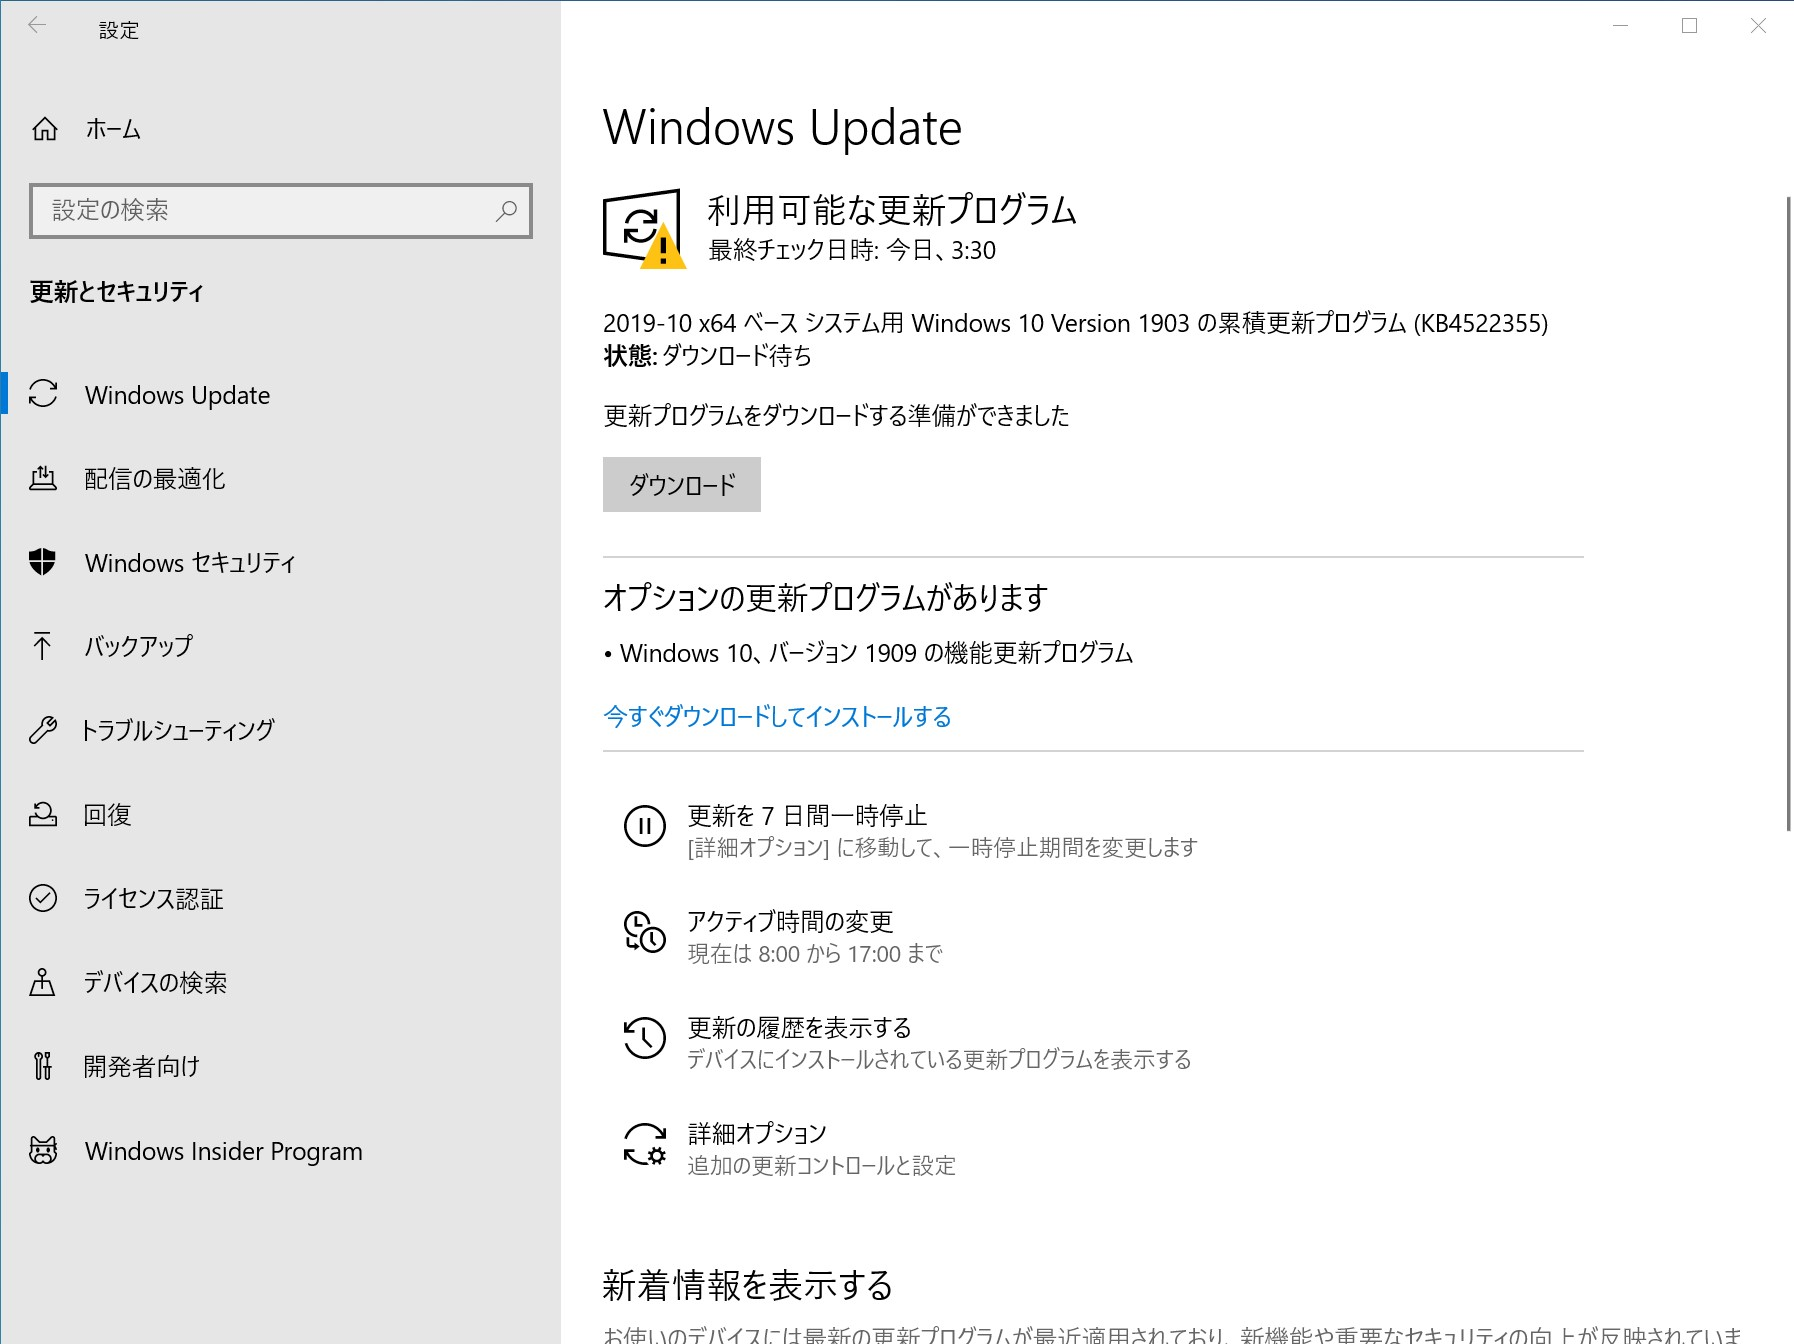 【Windows】Microsoft、「Windows 10 November 2019 Update」を一般公開